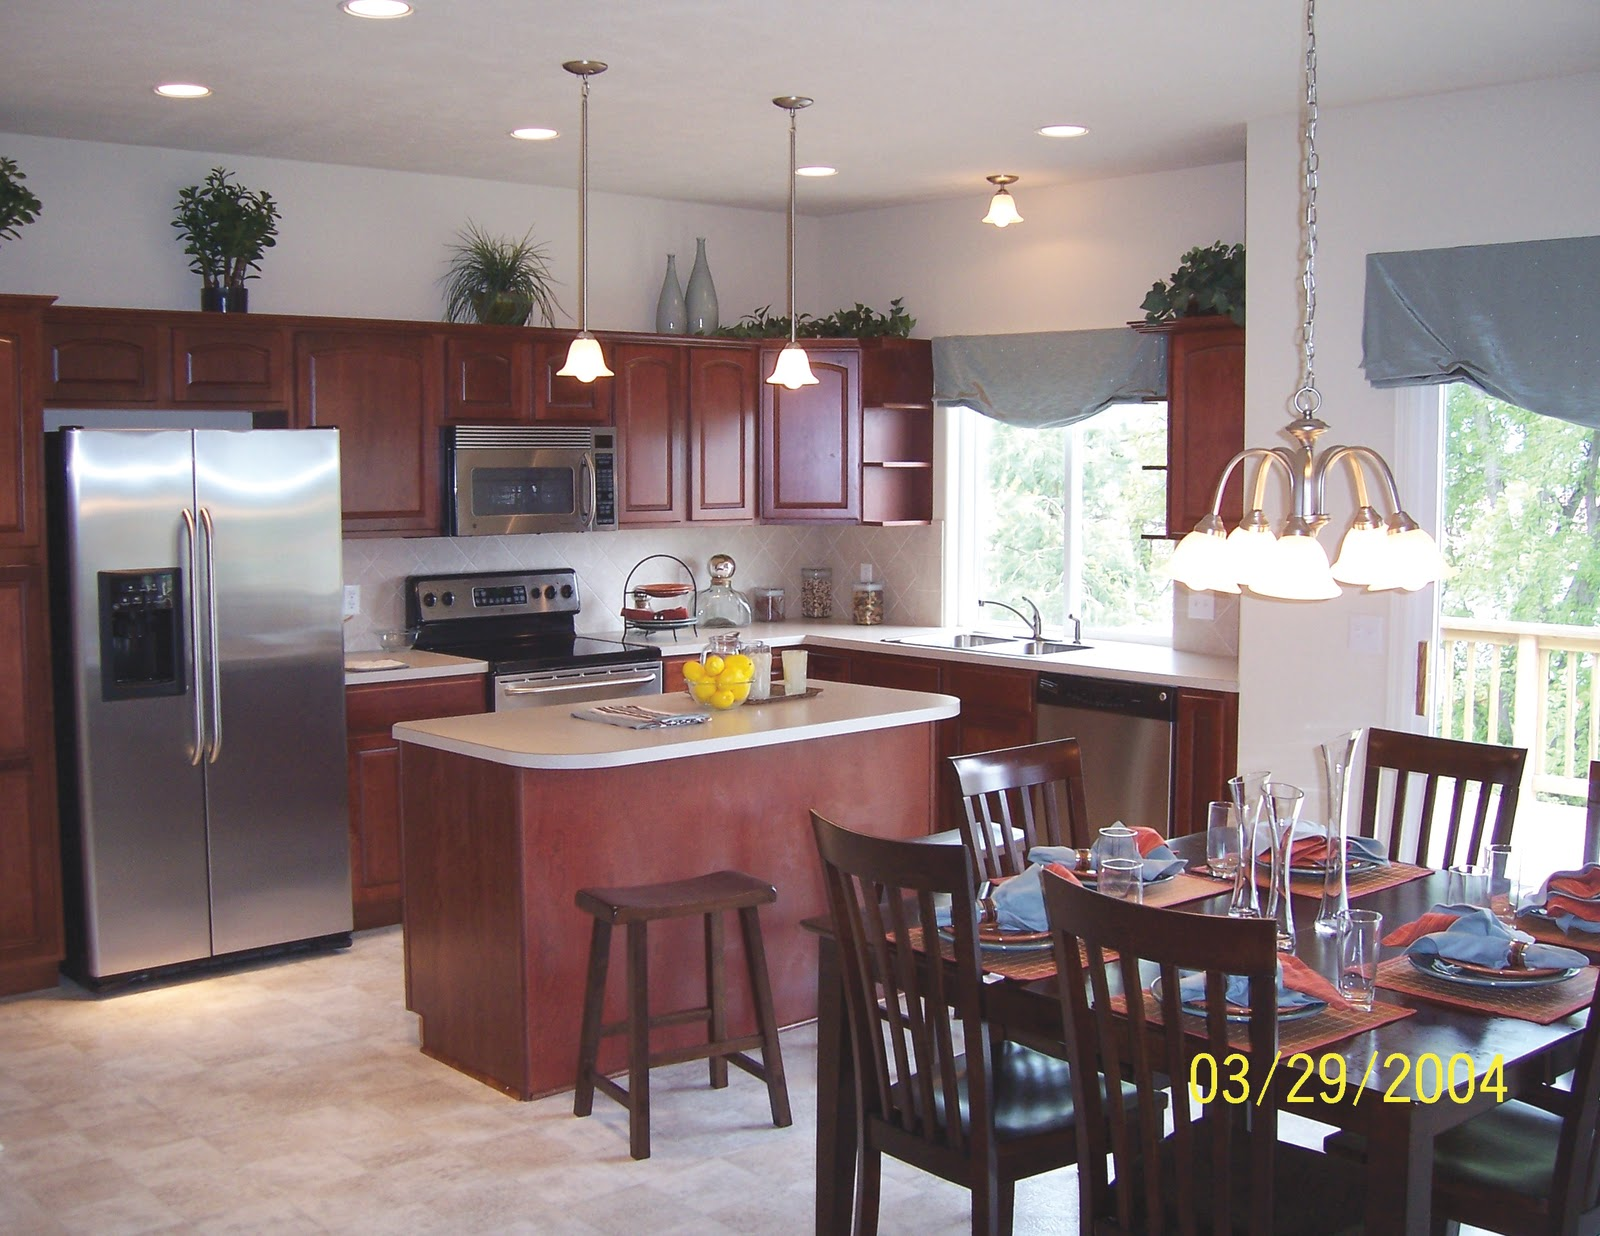 Omaha Homes Celebrity Homes Omaha From 120k 39 S What